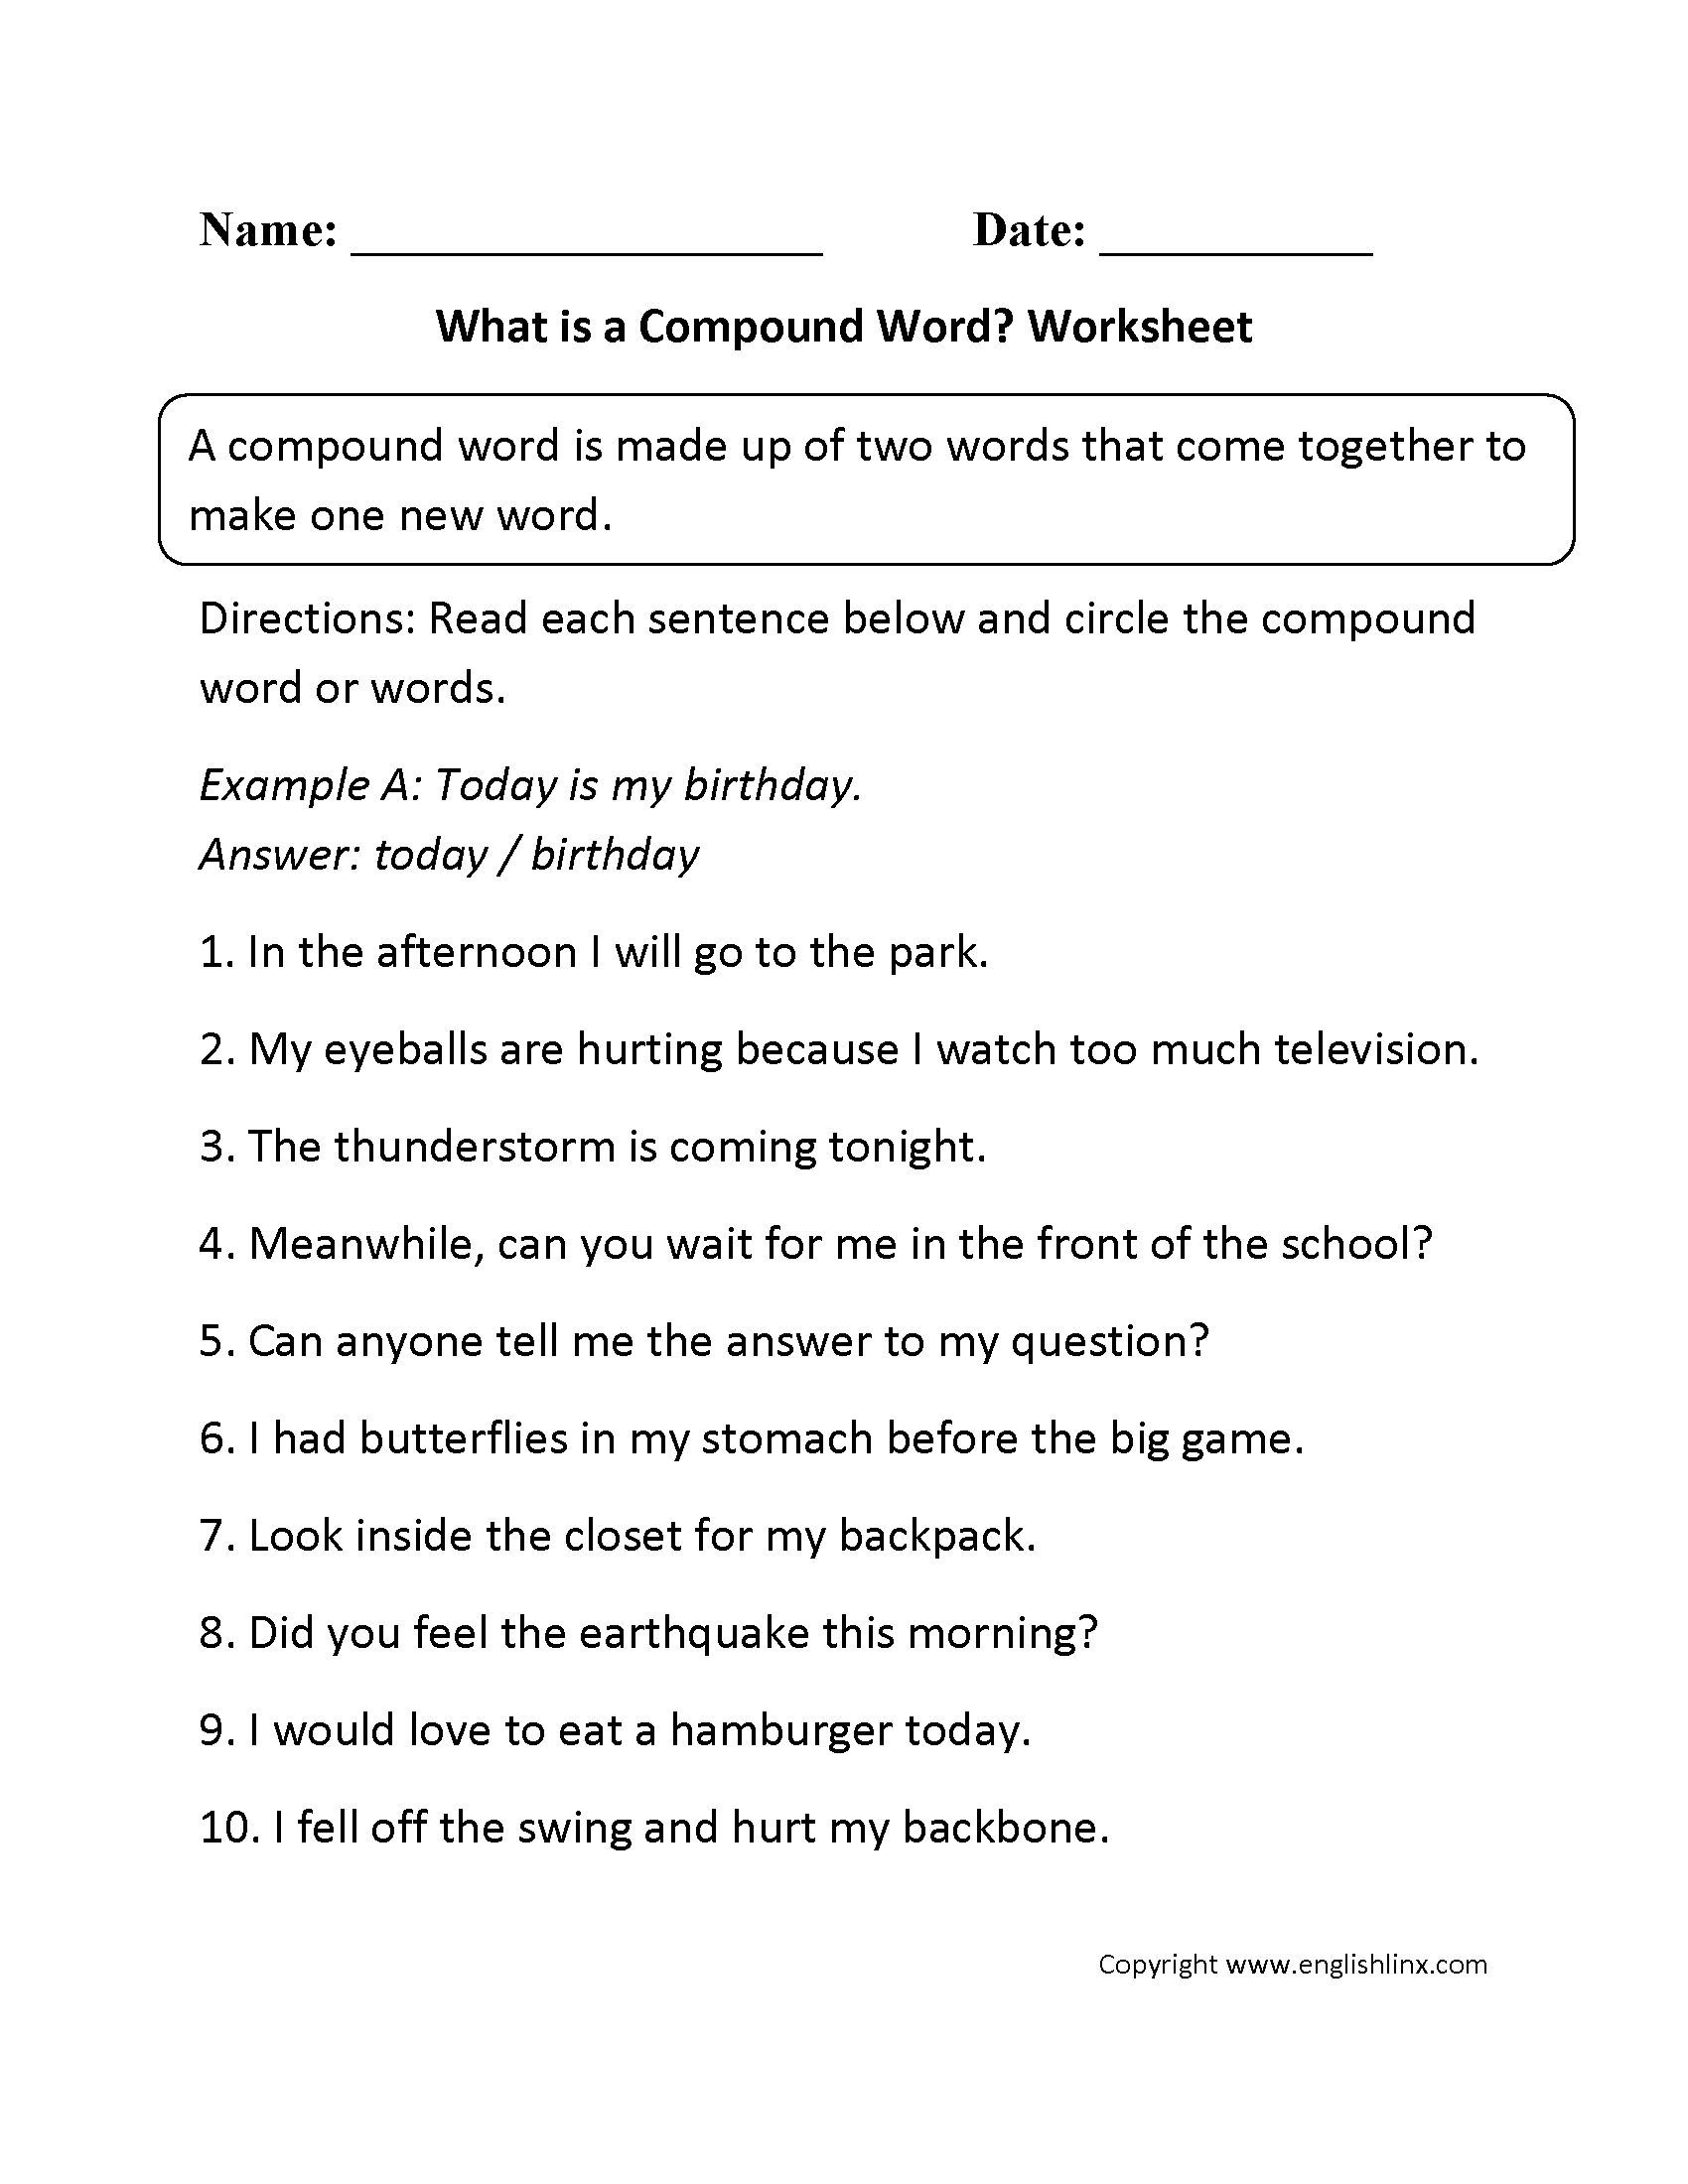 What Is A Compound Word Worksheets